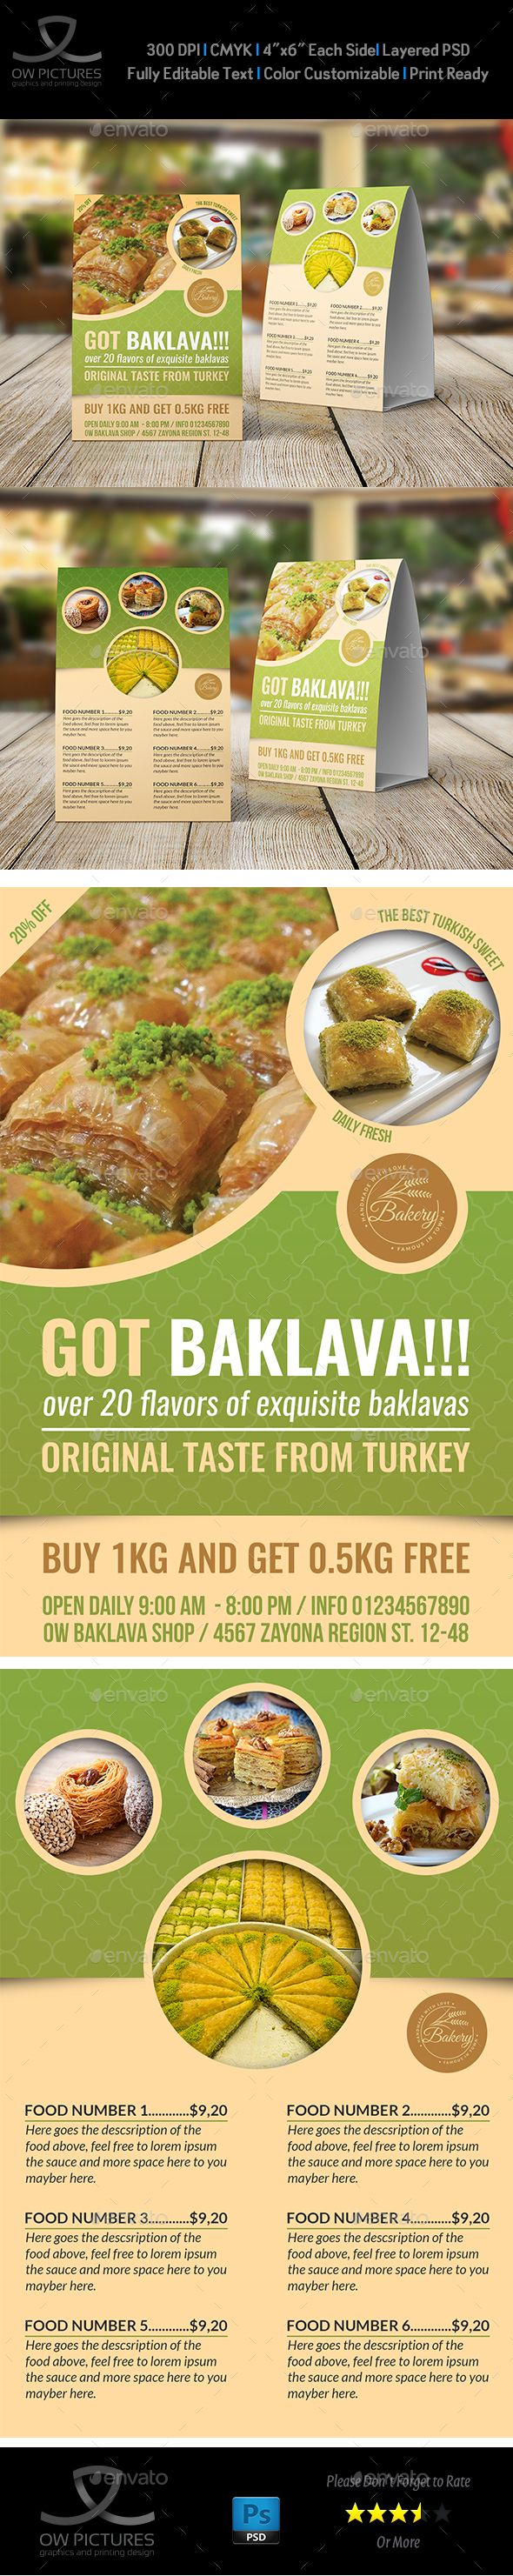 Baklava Table Tent Template : table tent design template - memphite.com